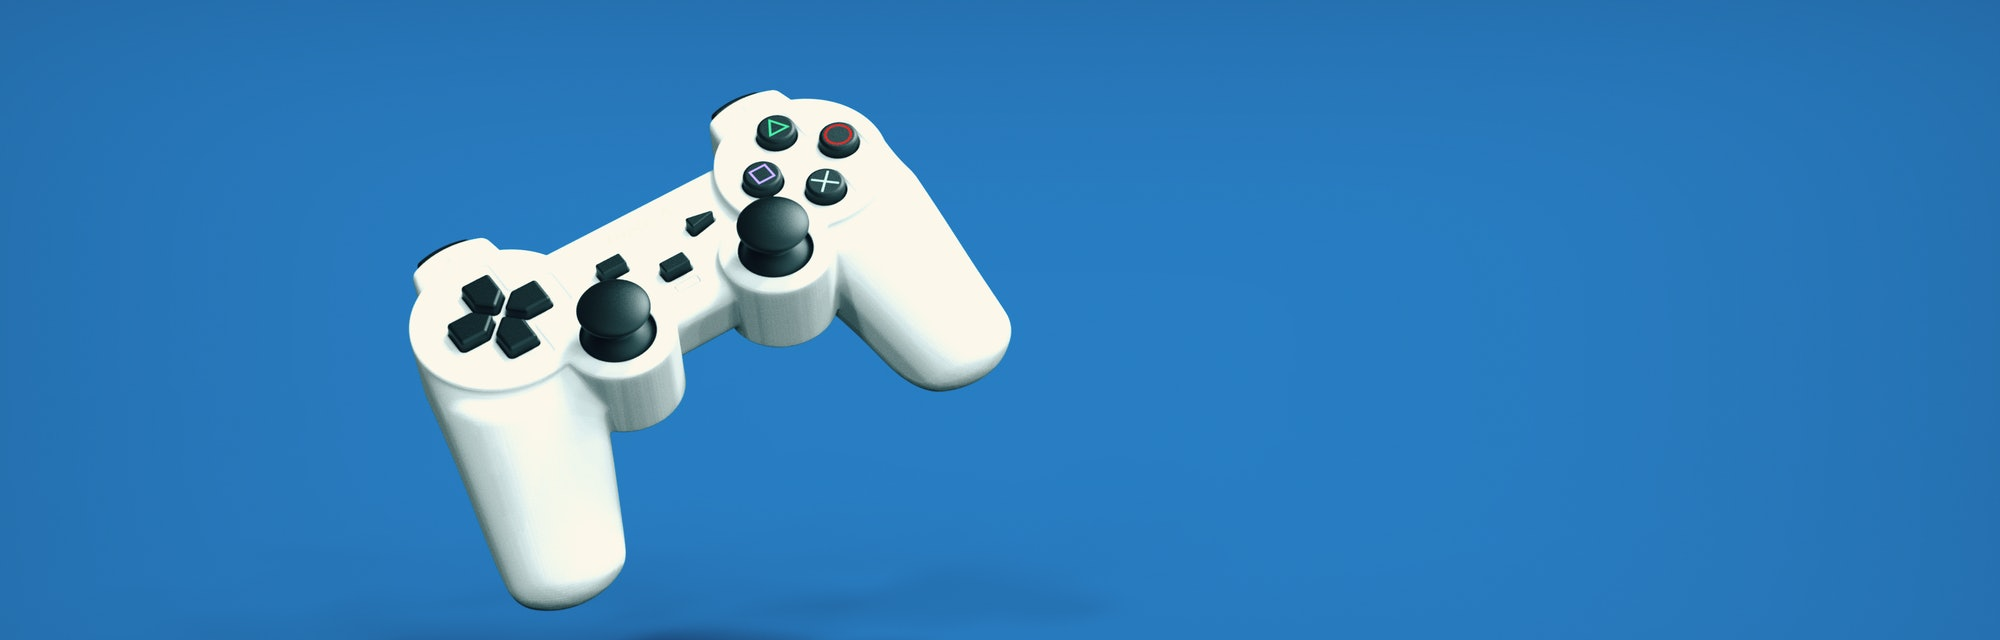 Ultrawide High Resolution Background with a controller. Can use for header, banner designs or print. Isolated Controller easy to cut/paste elsewhere. 3D Illustration, 3D Rendering.